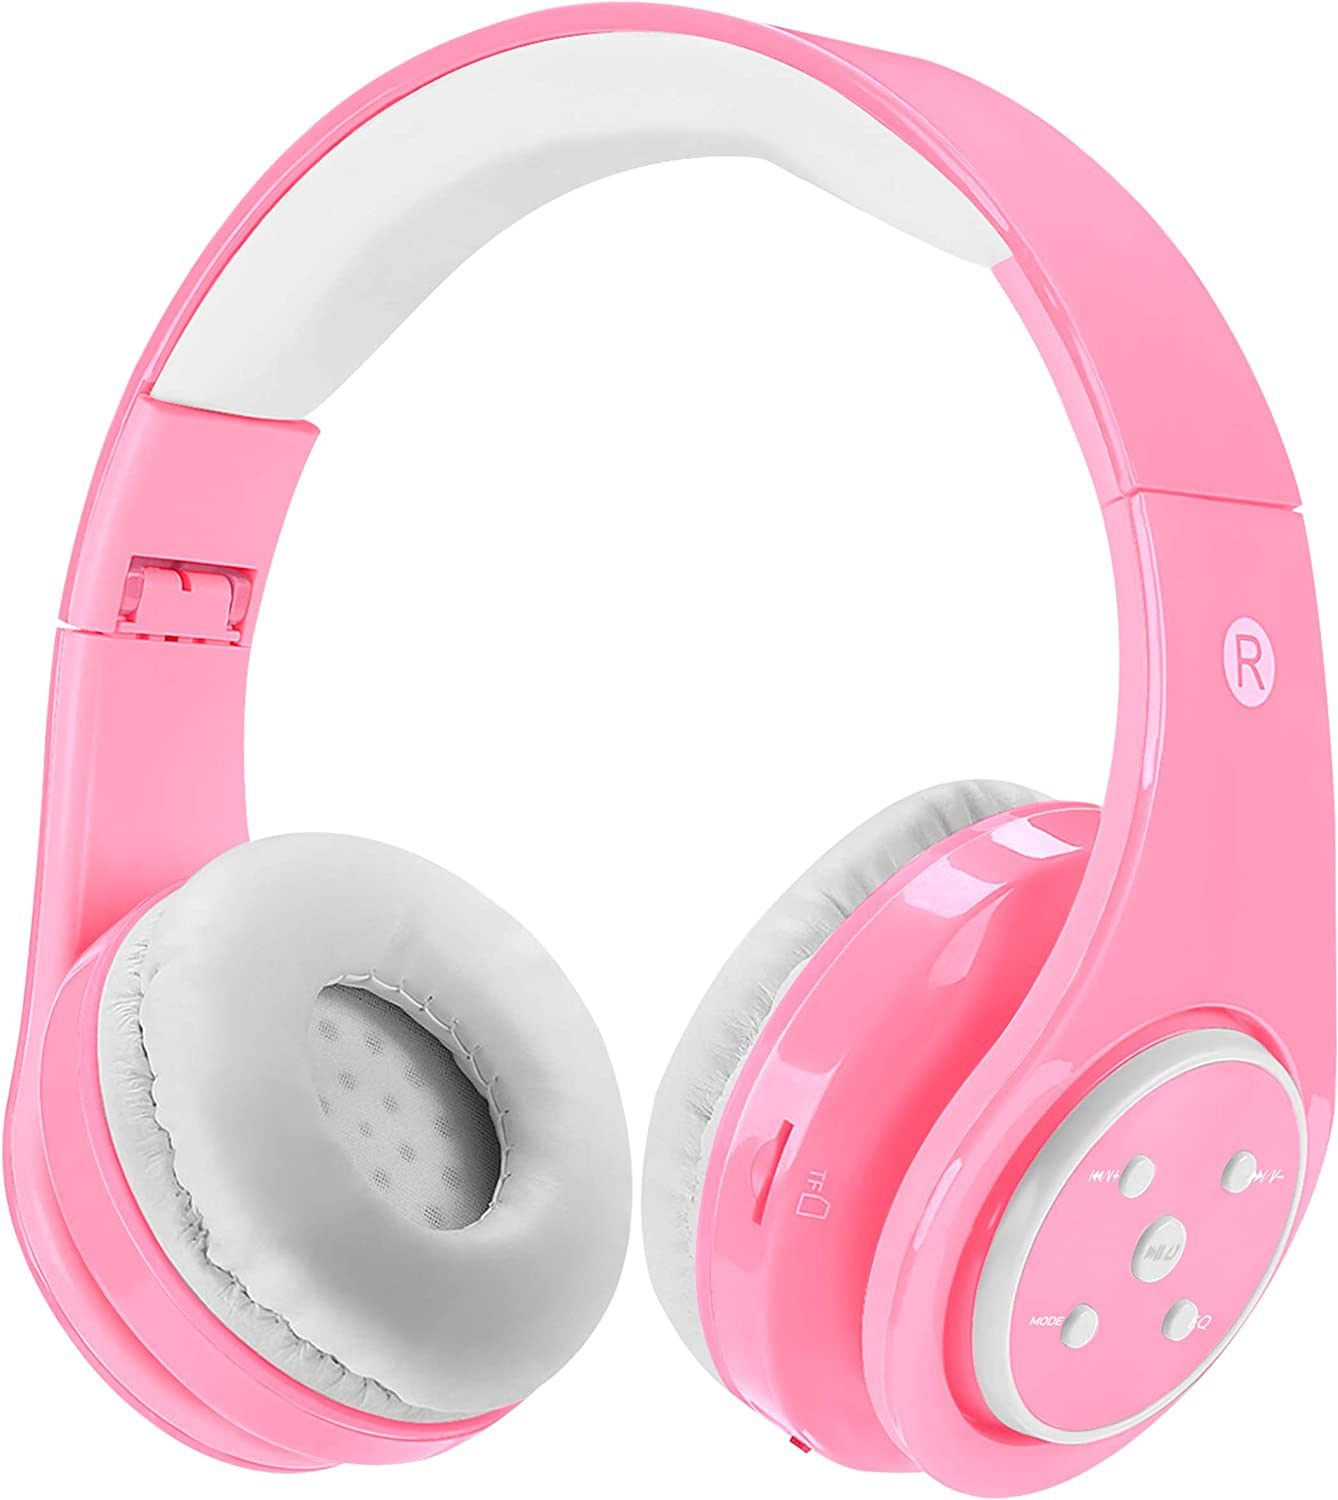 Yusonic Volume Limited Kids Bluetooth Headphones with Music share Port and Built-in Microphone E2 pink Kids Wireless Headphones